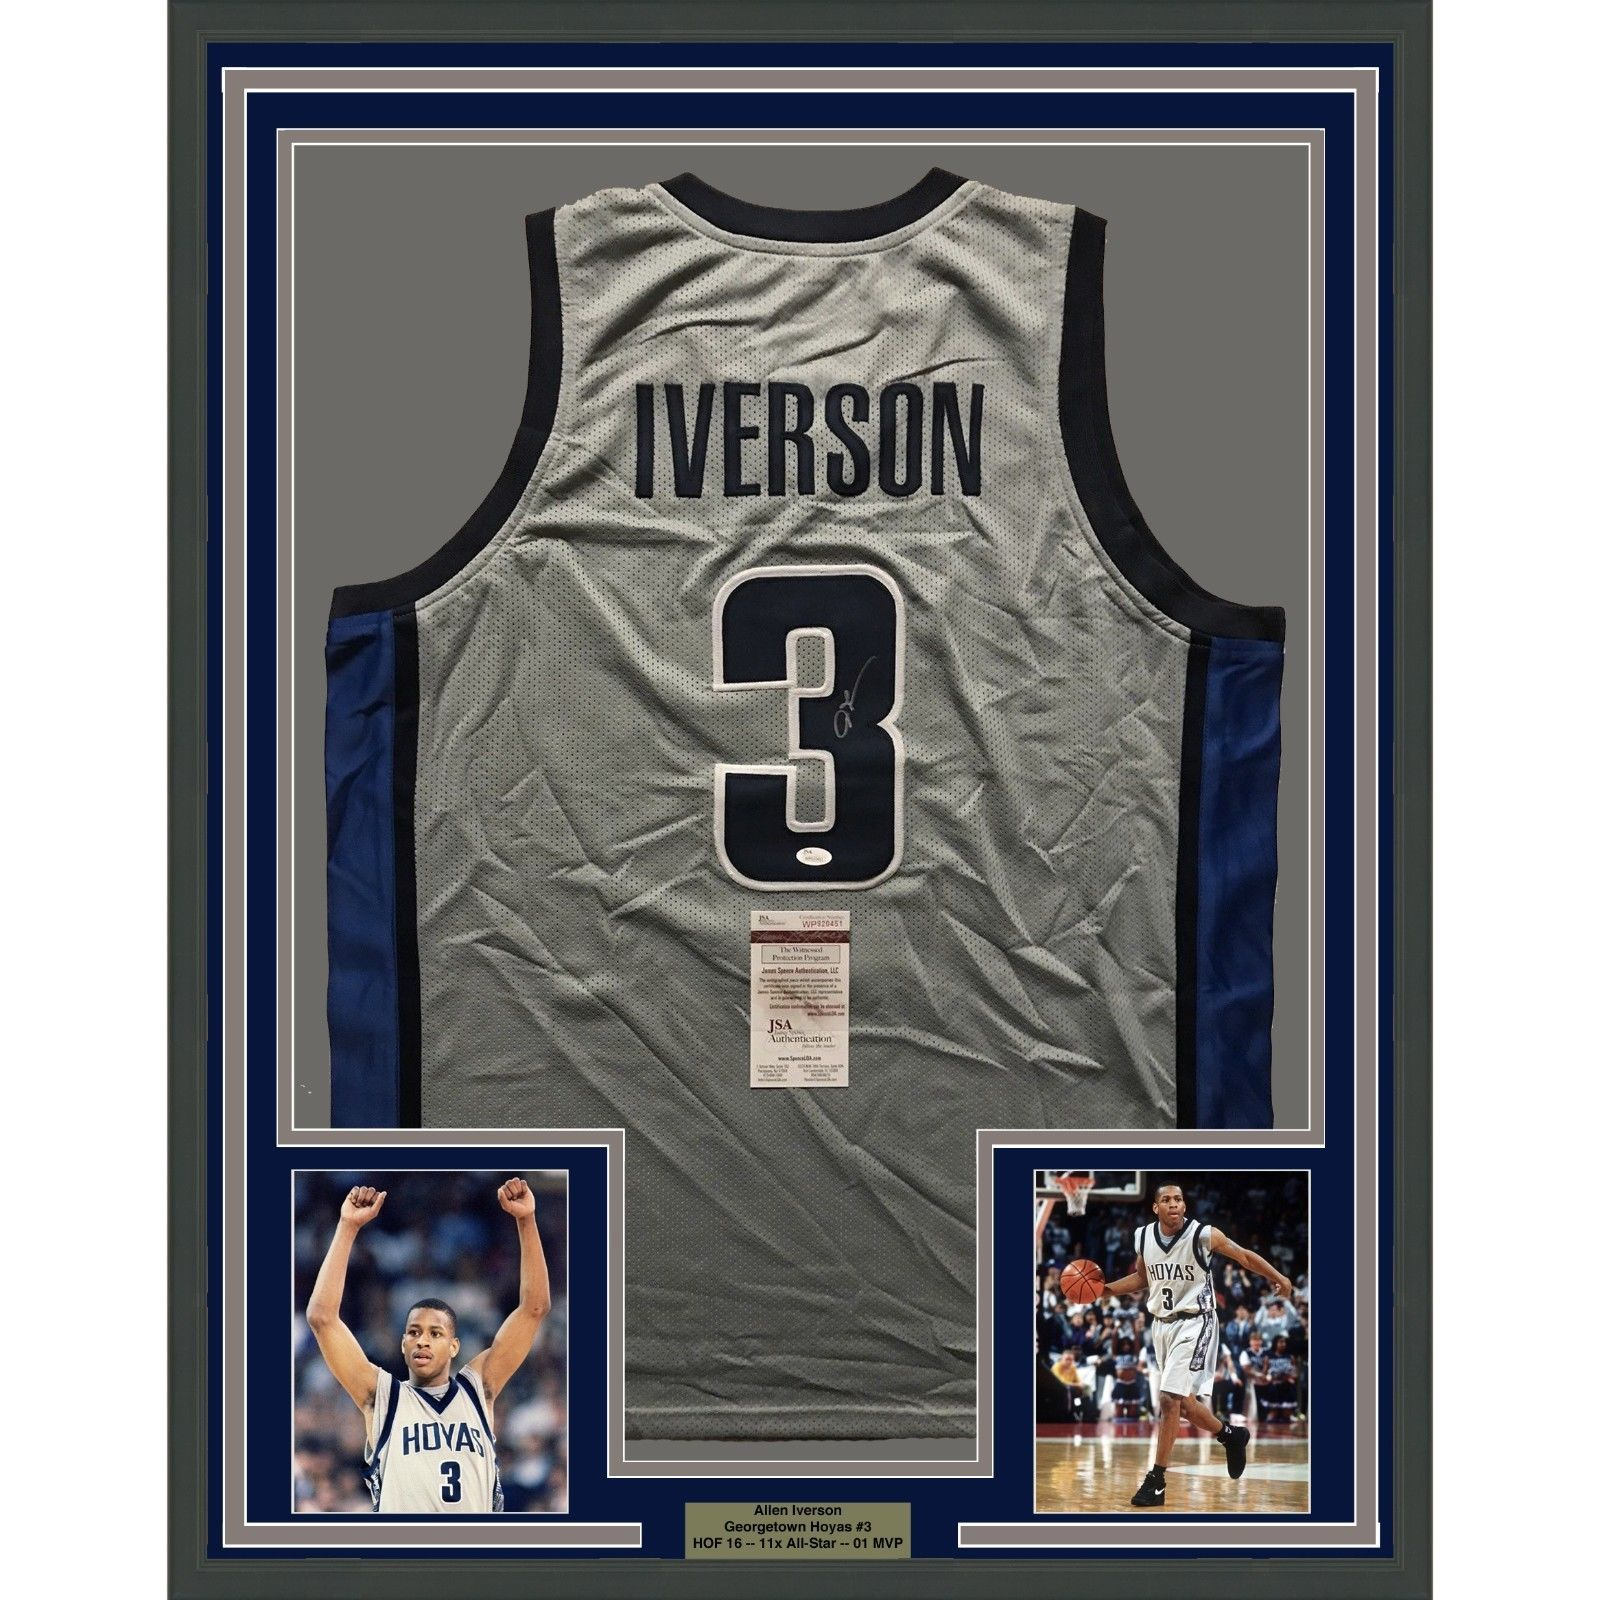 26d3f10dd83 S l1600. S l1600. Previous. FRAMED Autographed/Signed ALLEN IVERSON 33x42  Georgetown Grey Jersey JSA COA